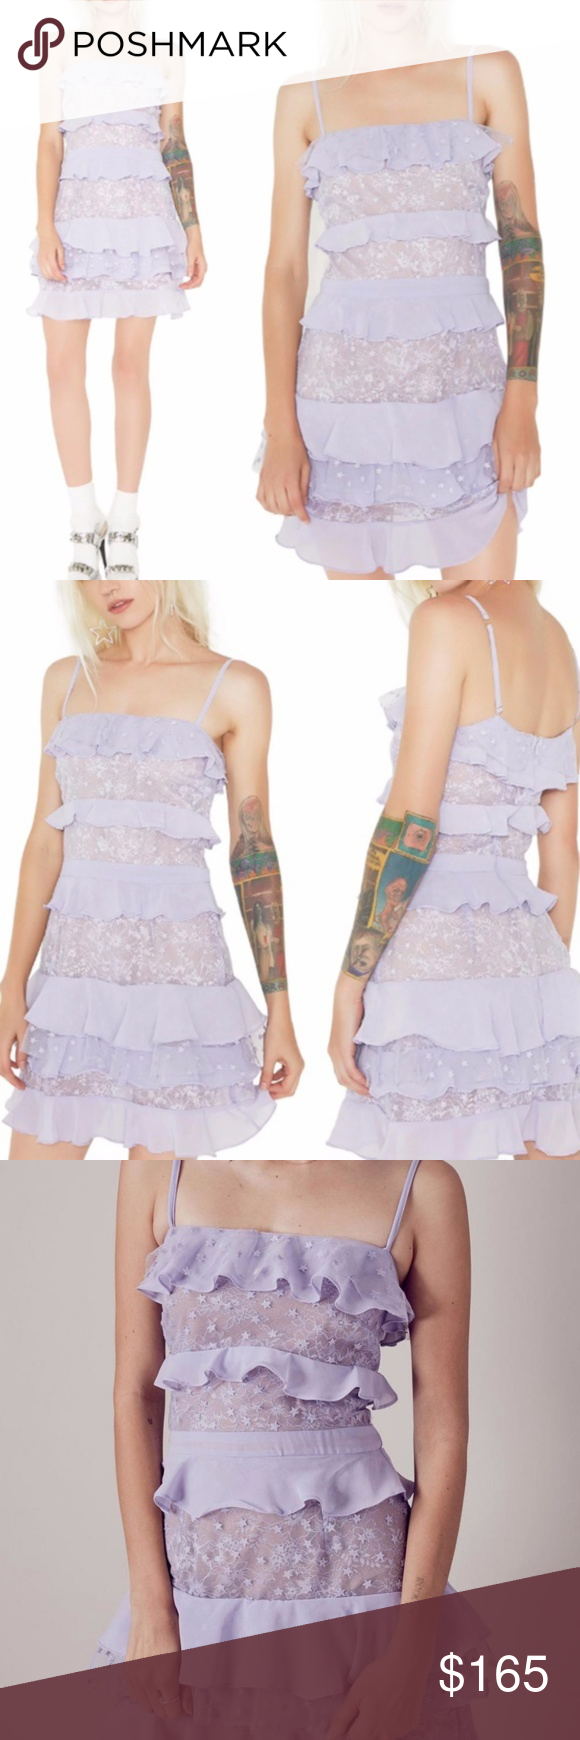 c0c581fd19f NWT For Love and Lemons Cosmic Tiered Lace Dress NWT For Love and Lemons  Pale purple